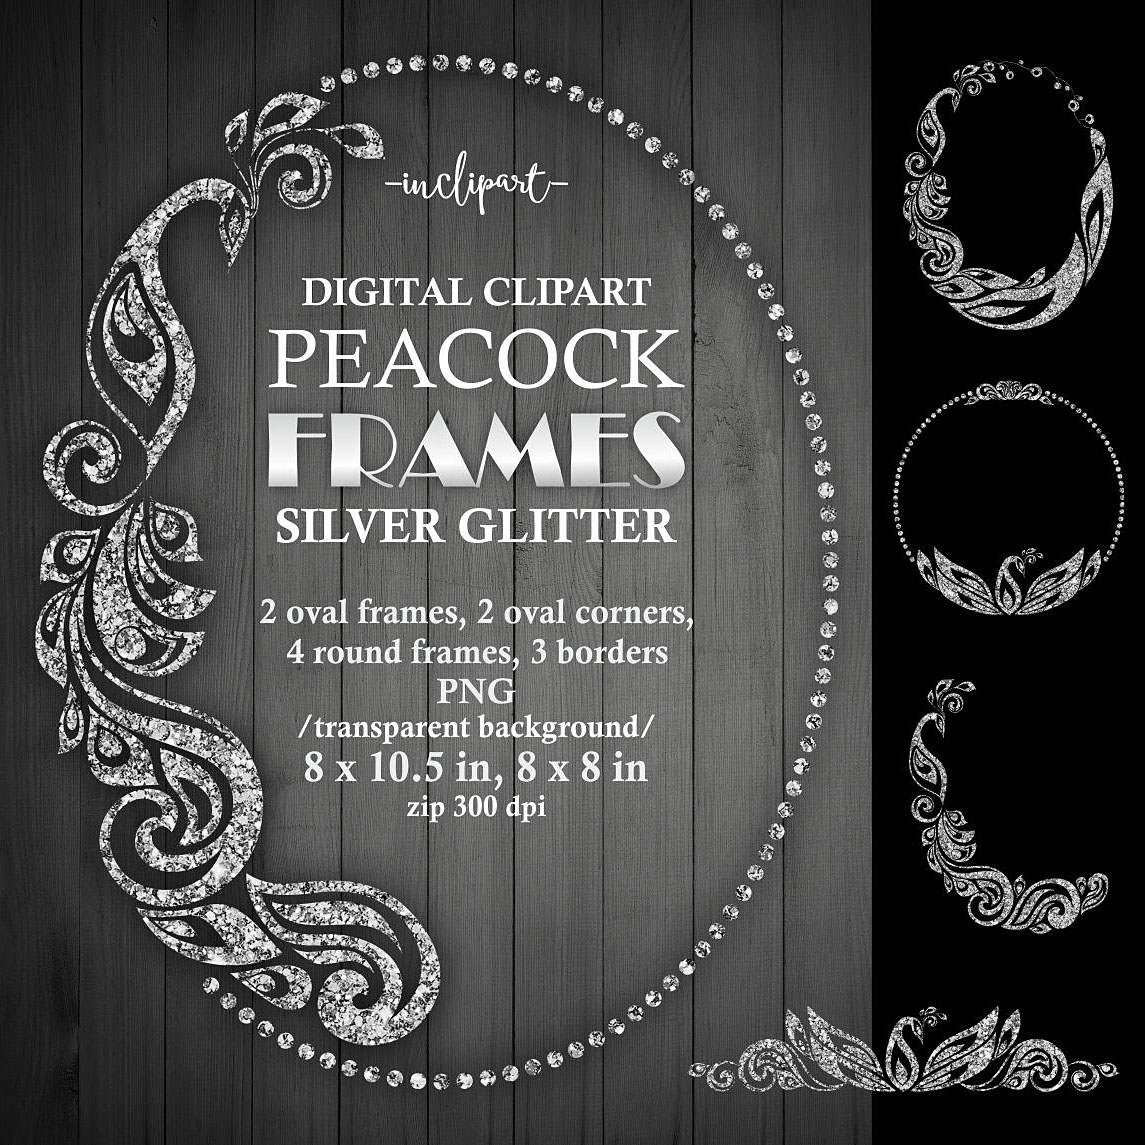 Peacock frame clipart. Digital Silver glitter oval, round.